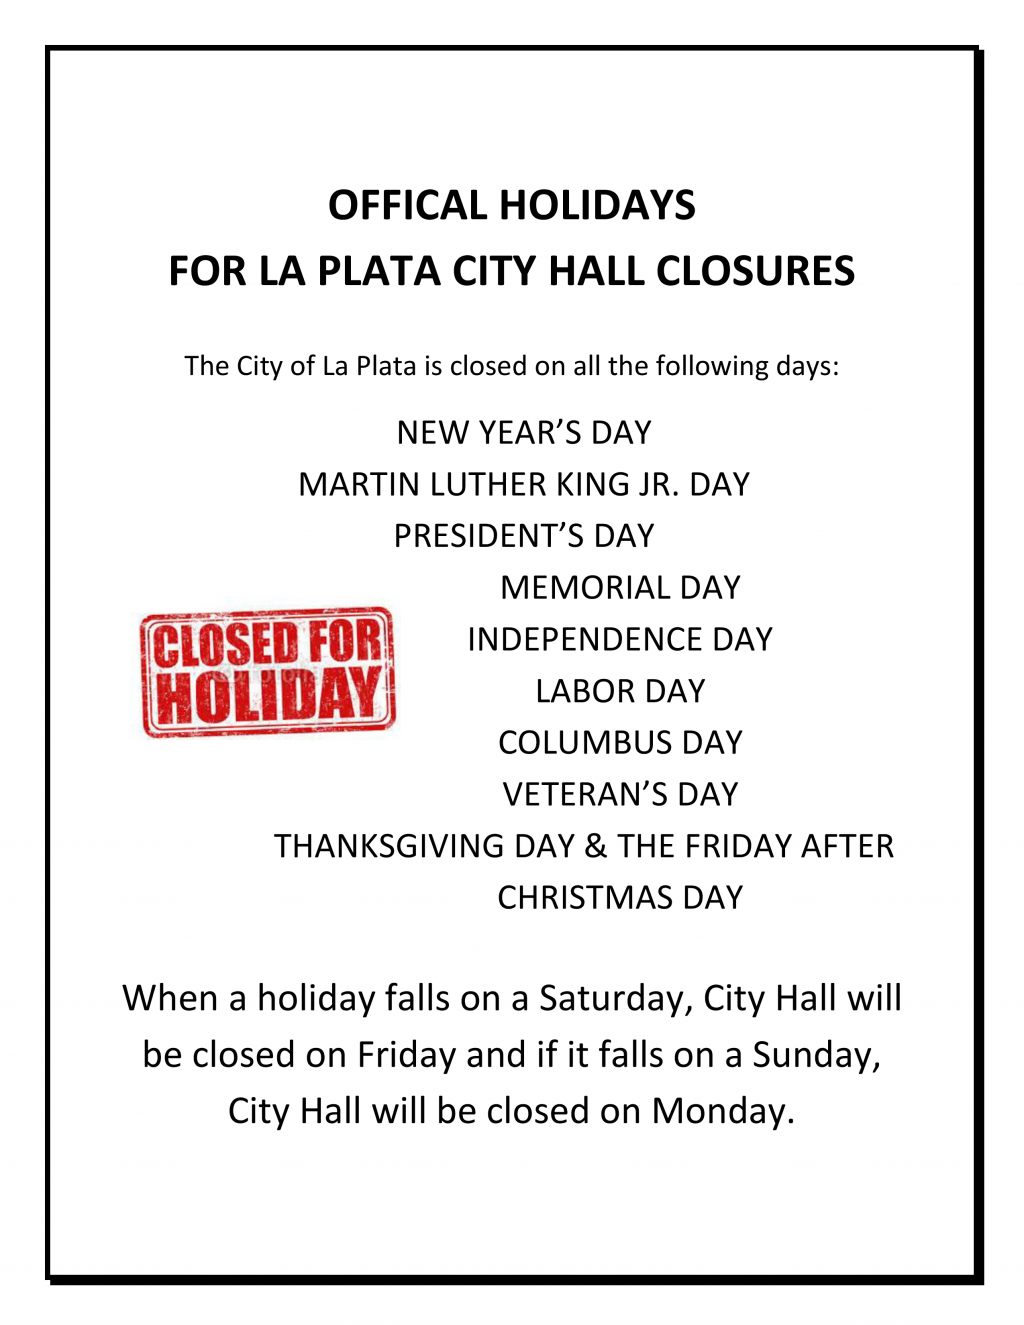 image-760525-SCHEDULE_FOR_CITY_HALL_CLOSINGS_(1).w640.png